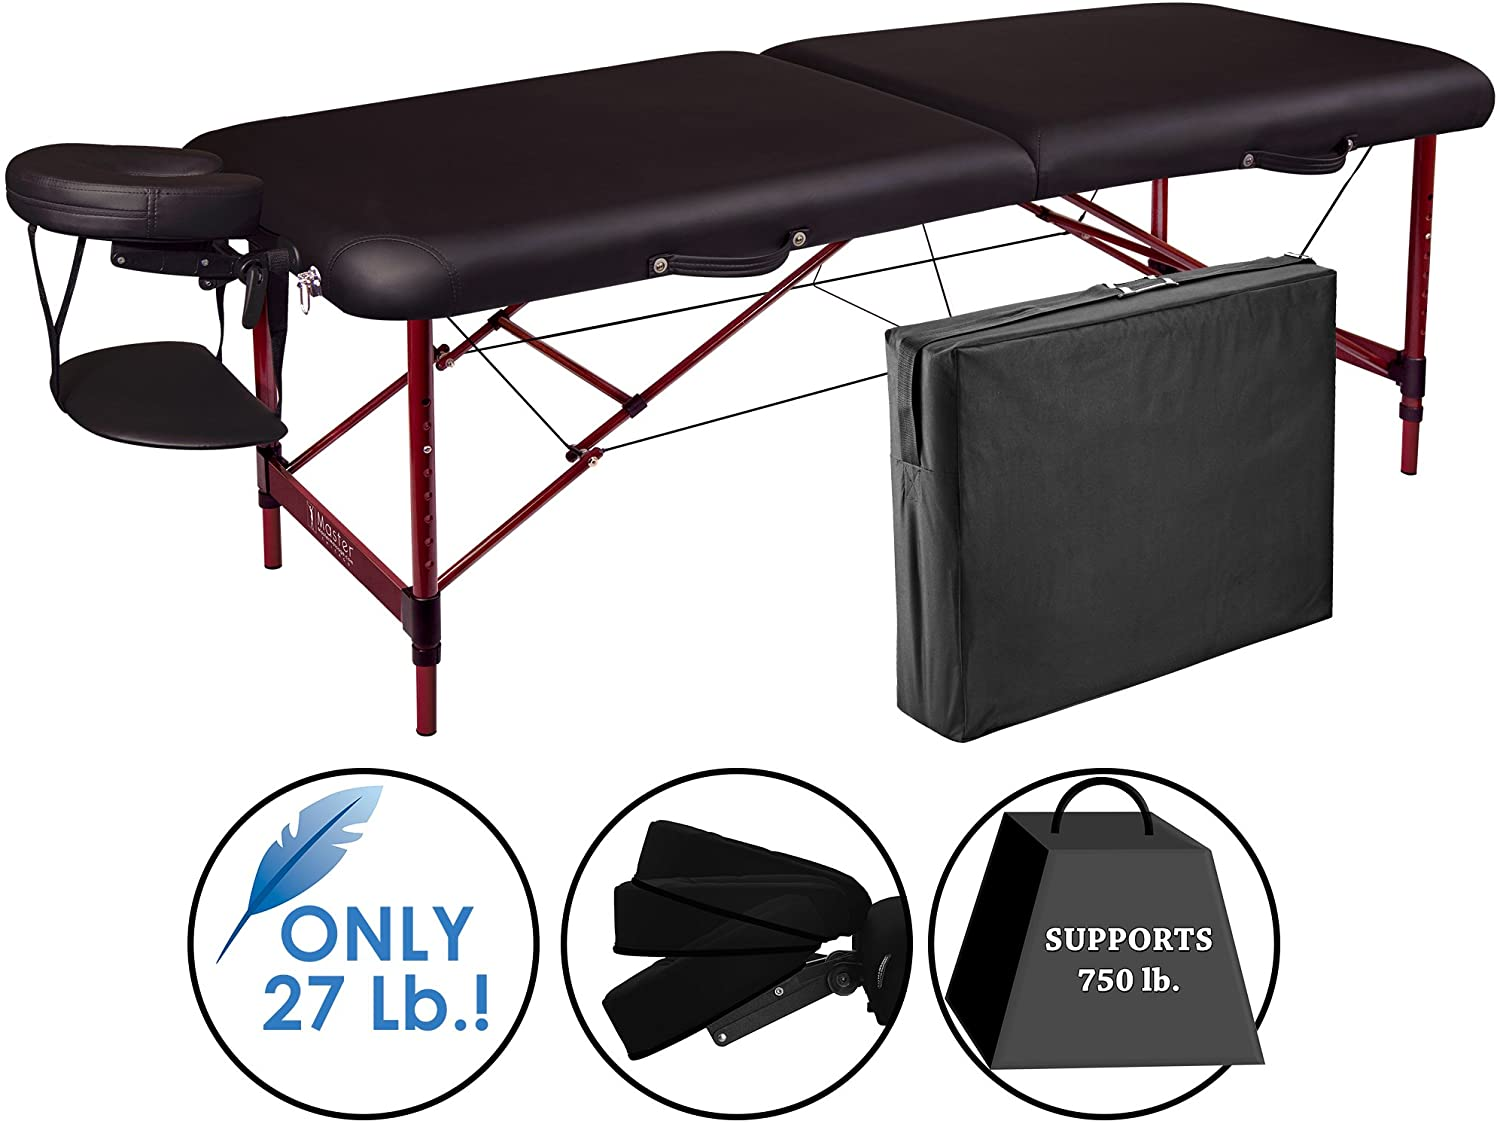 Master Massage Zephyr Lightweight Portable Massage Table Package, Black